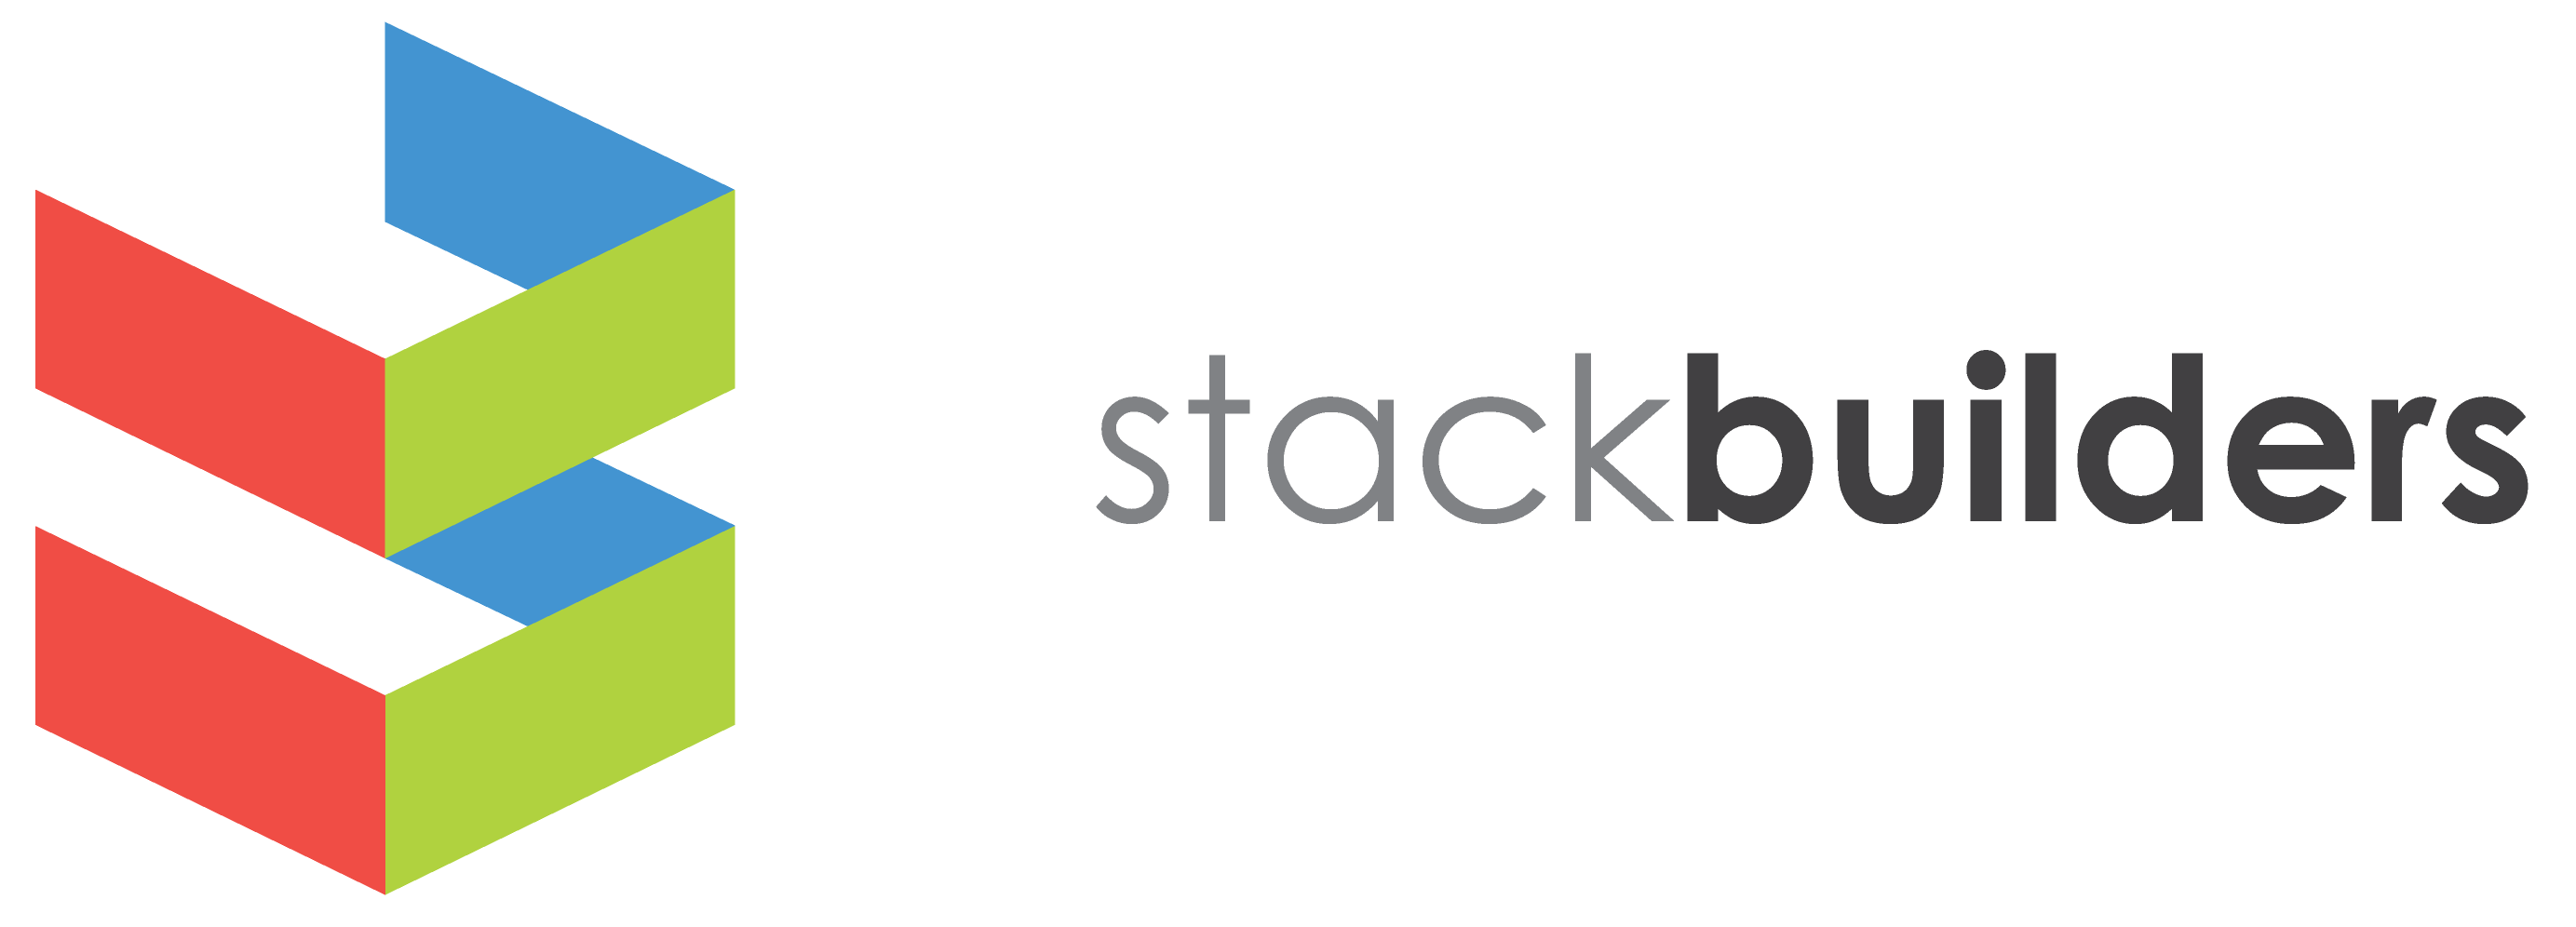 Haskell Communities And Activities Report Circuit Builder Stuckwithphysicscouk Stack Builders Is An International Software Consultancy Aimed To Push The Boundaries Of Industry As Consultants We Use Functional